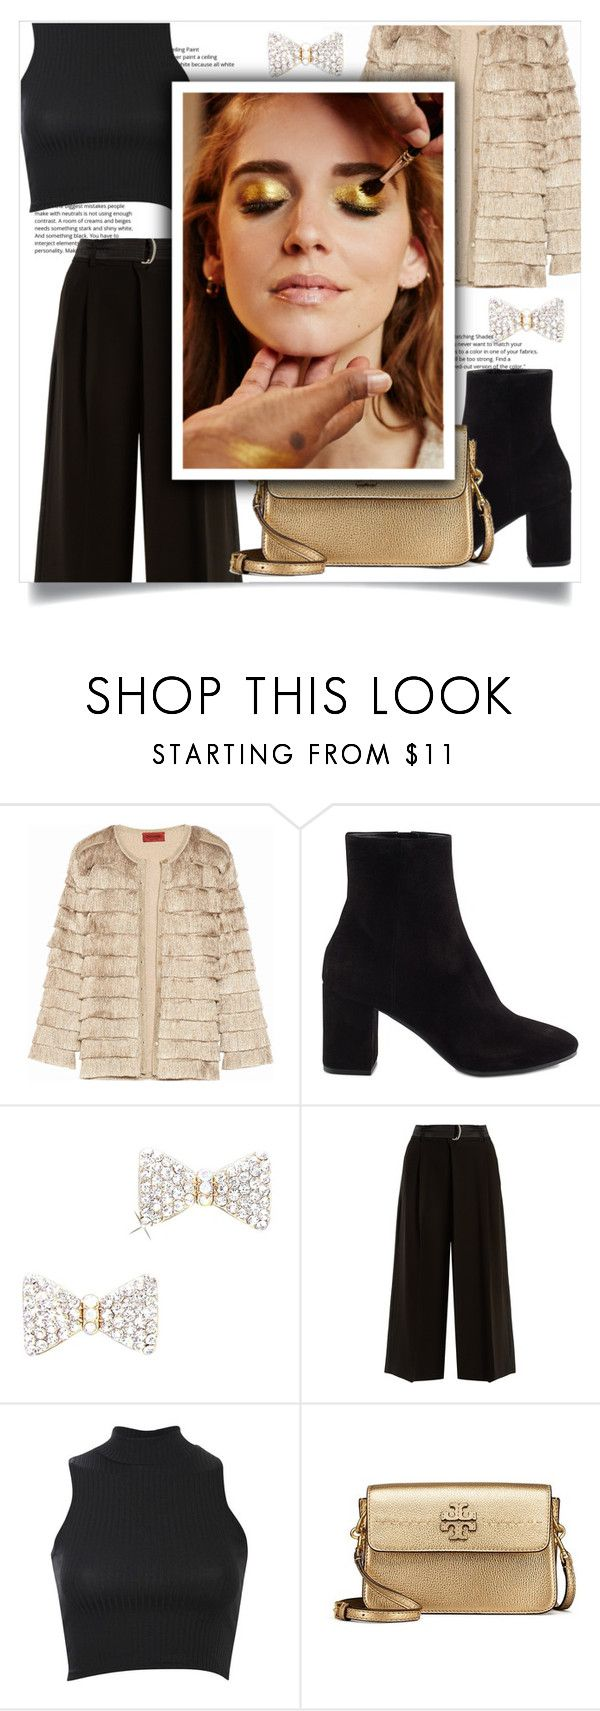 """Gold"" by jane-cupacake ❤ liked on Polyvore featuring Missoni, Balenciaga, Weekend Max Mara, Pilot, Tory Burch and Pat McGrath"